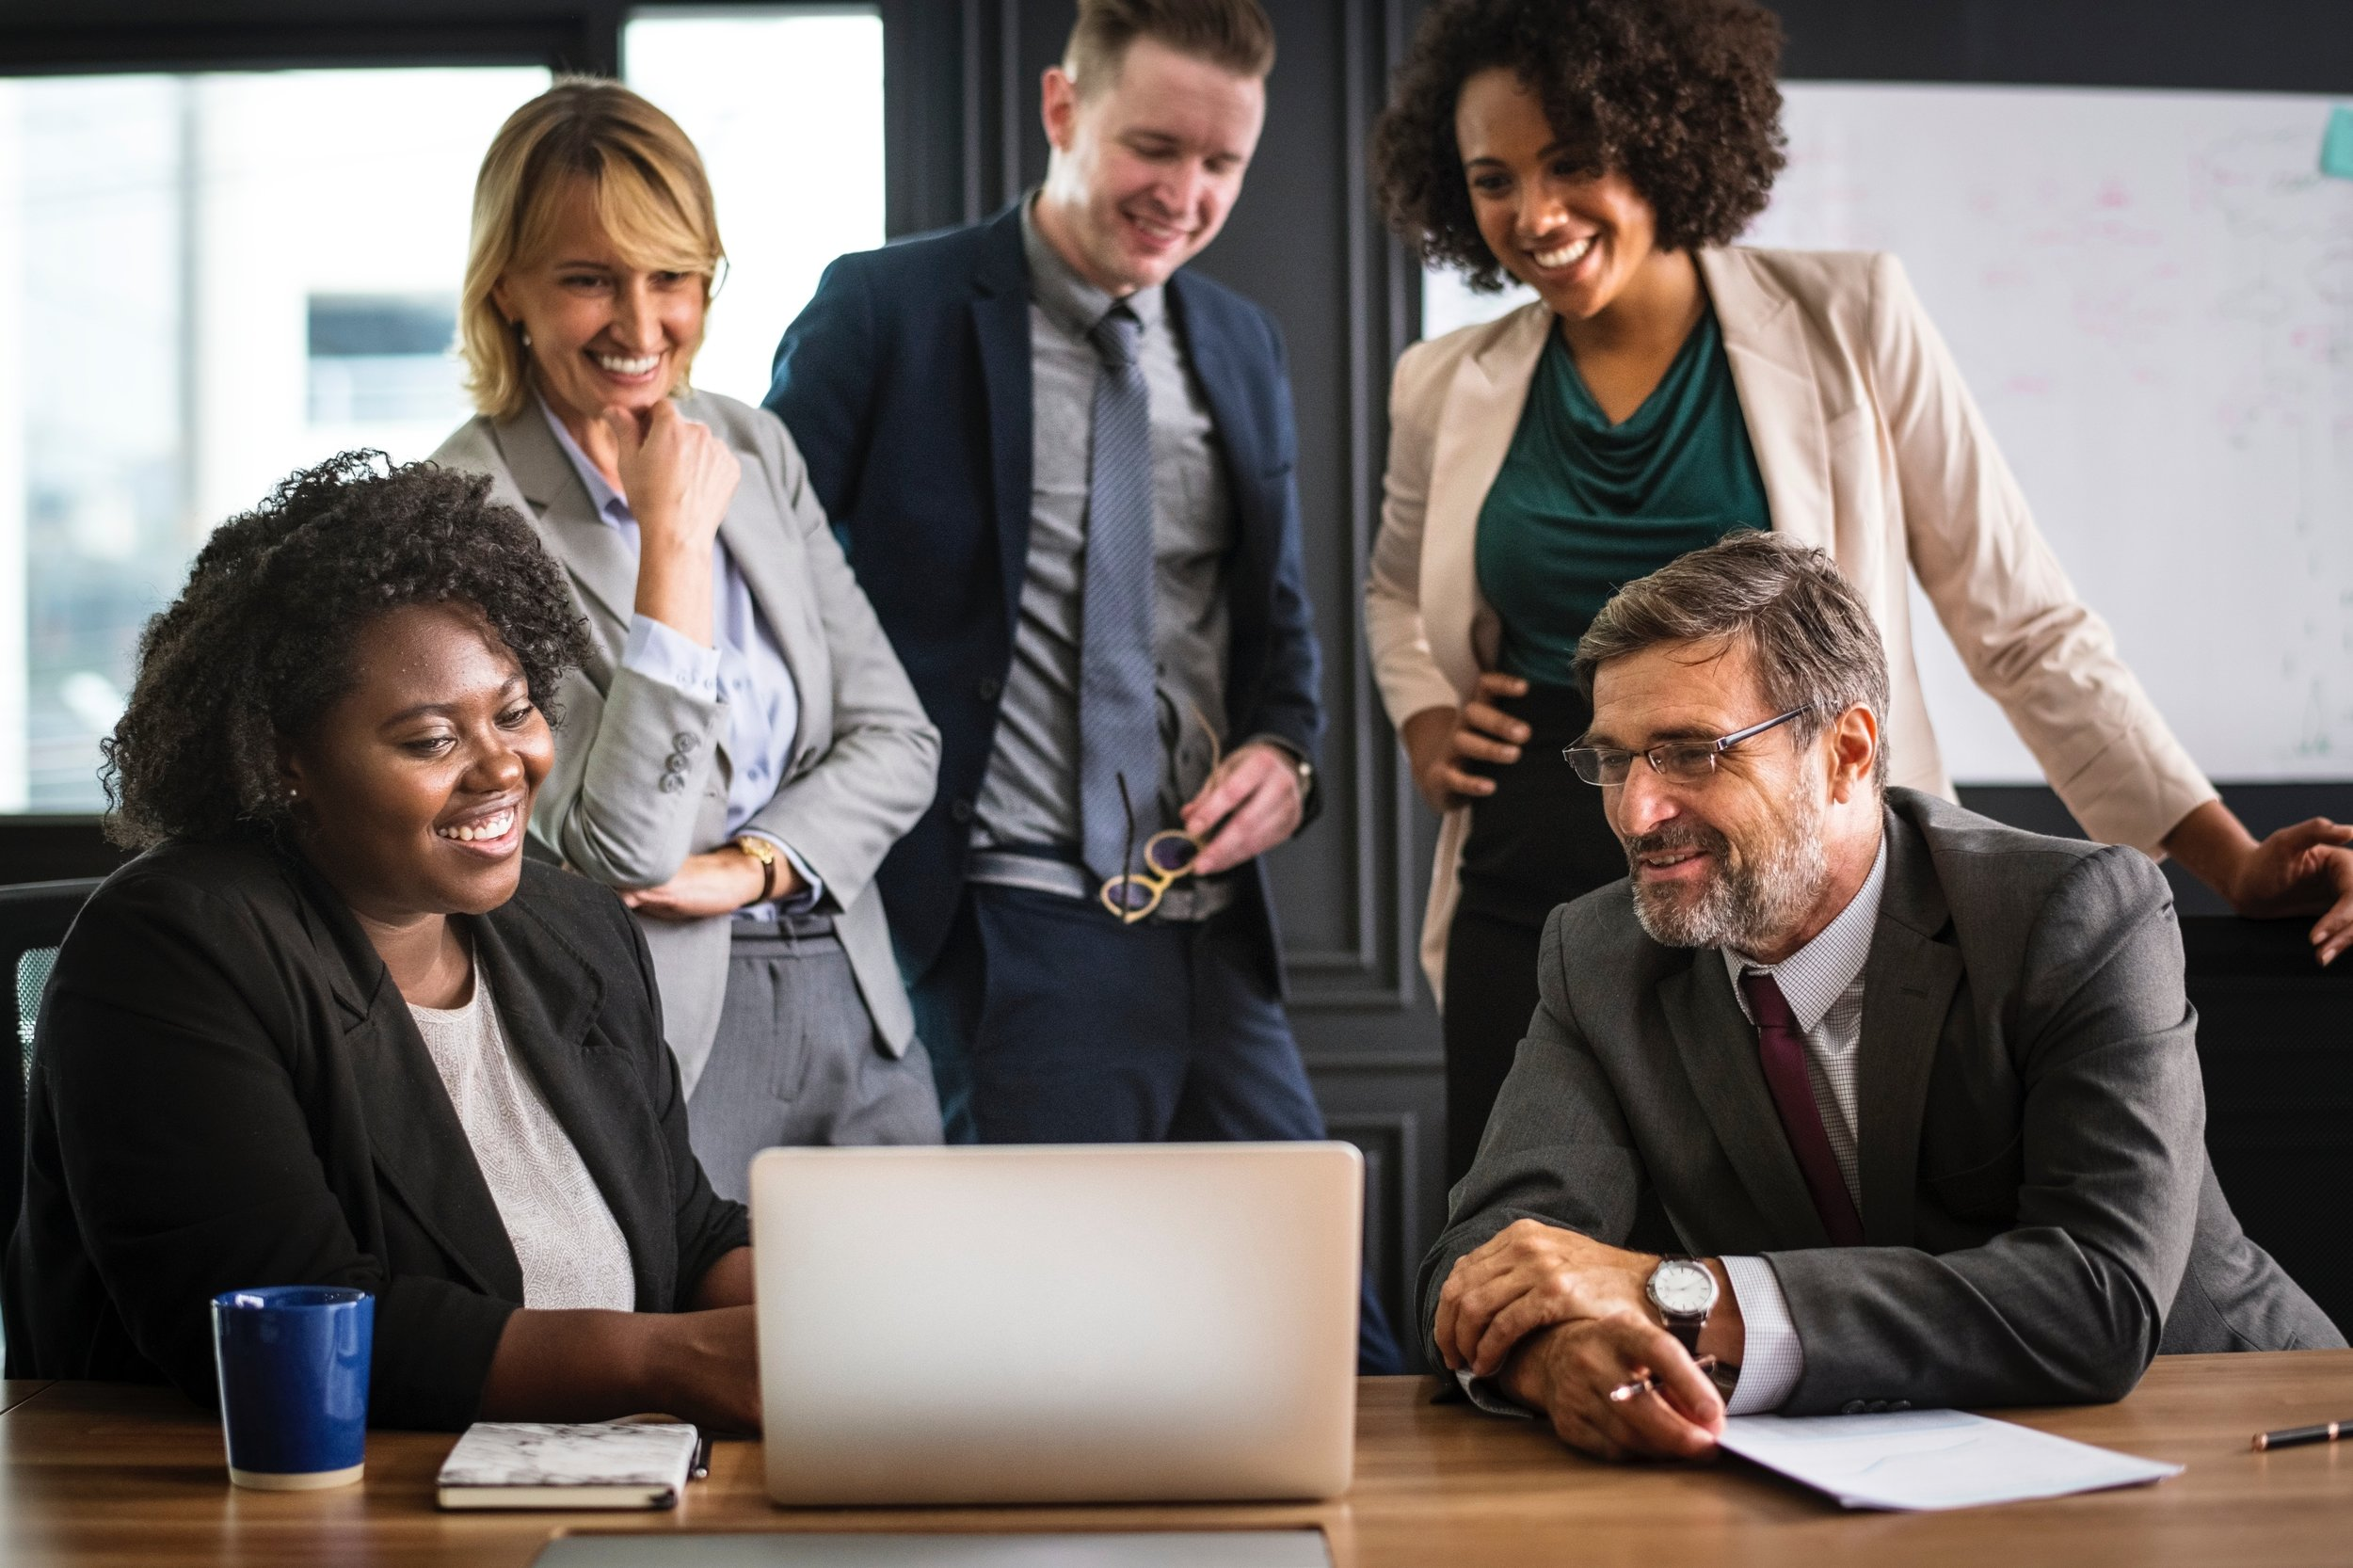 We've yet to find a stock image of 'negotiation' where the subjects look anything other than absolutely ecstatic. We like the stock library's positivity.